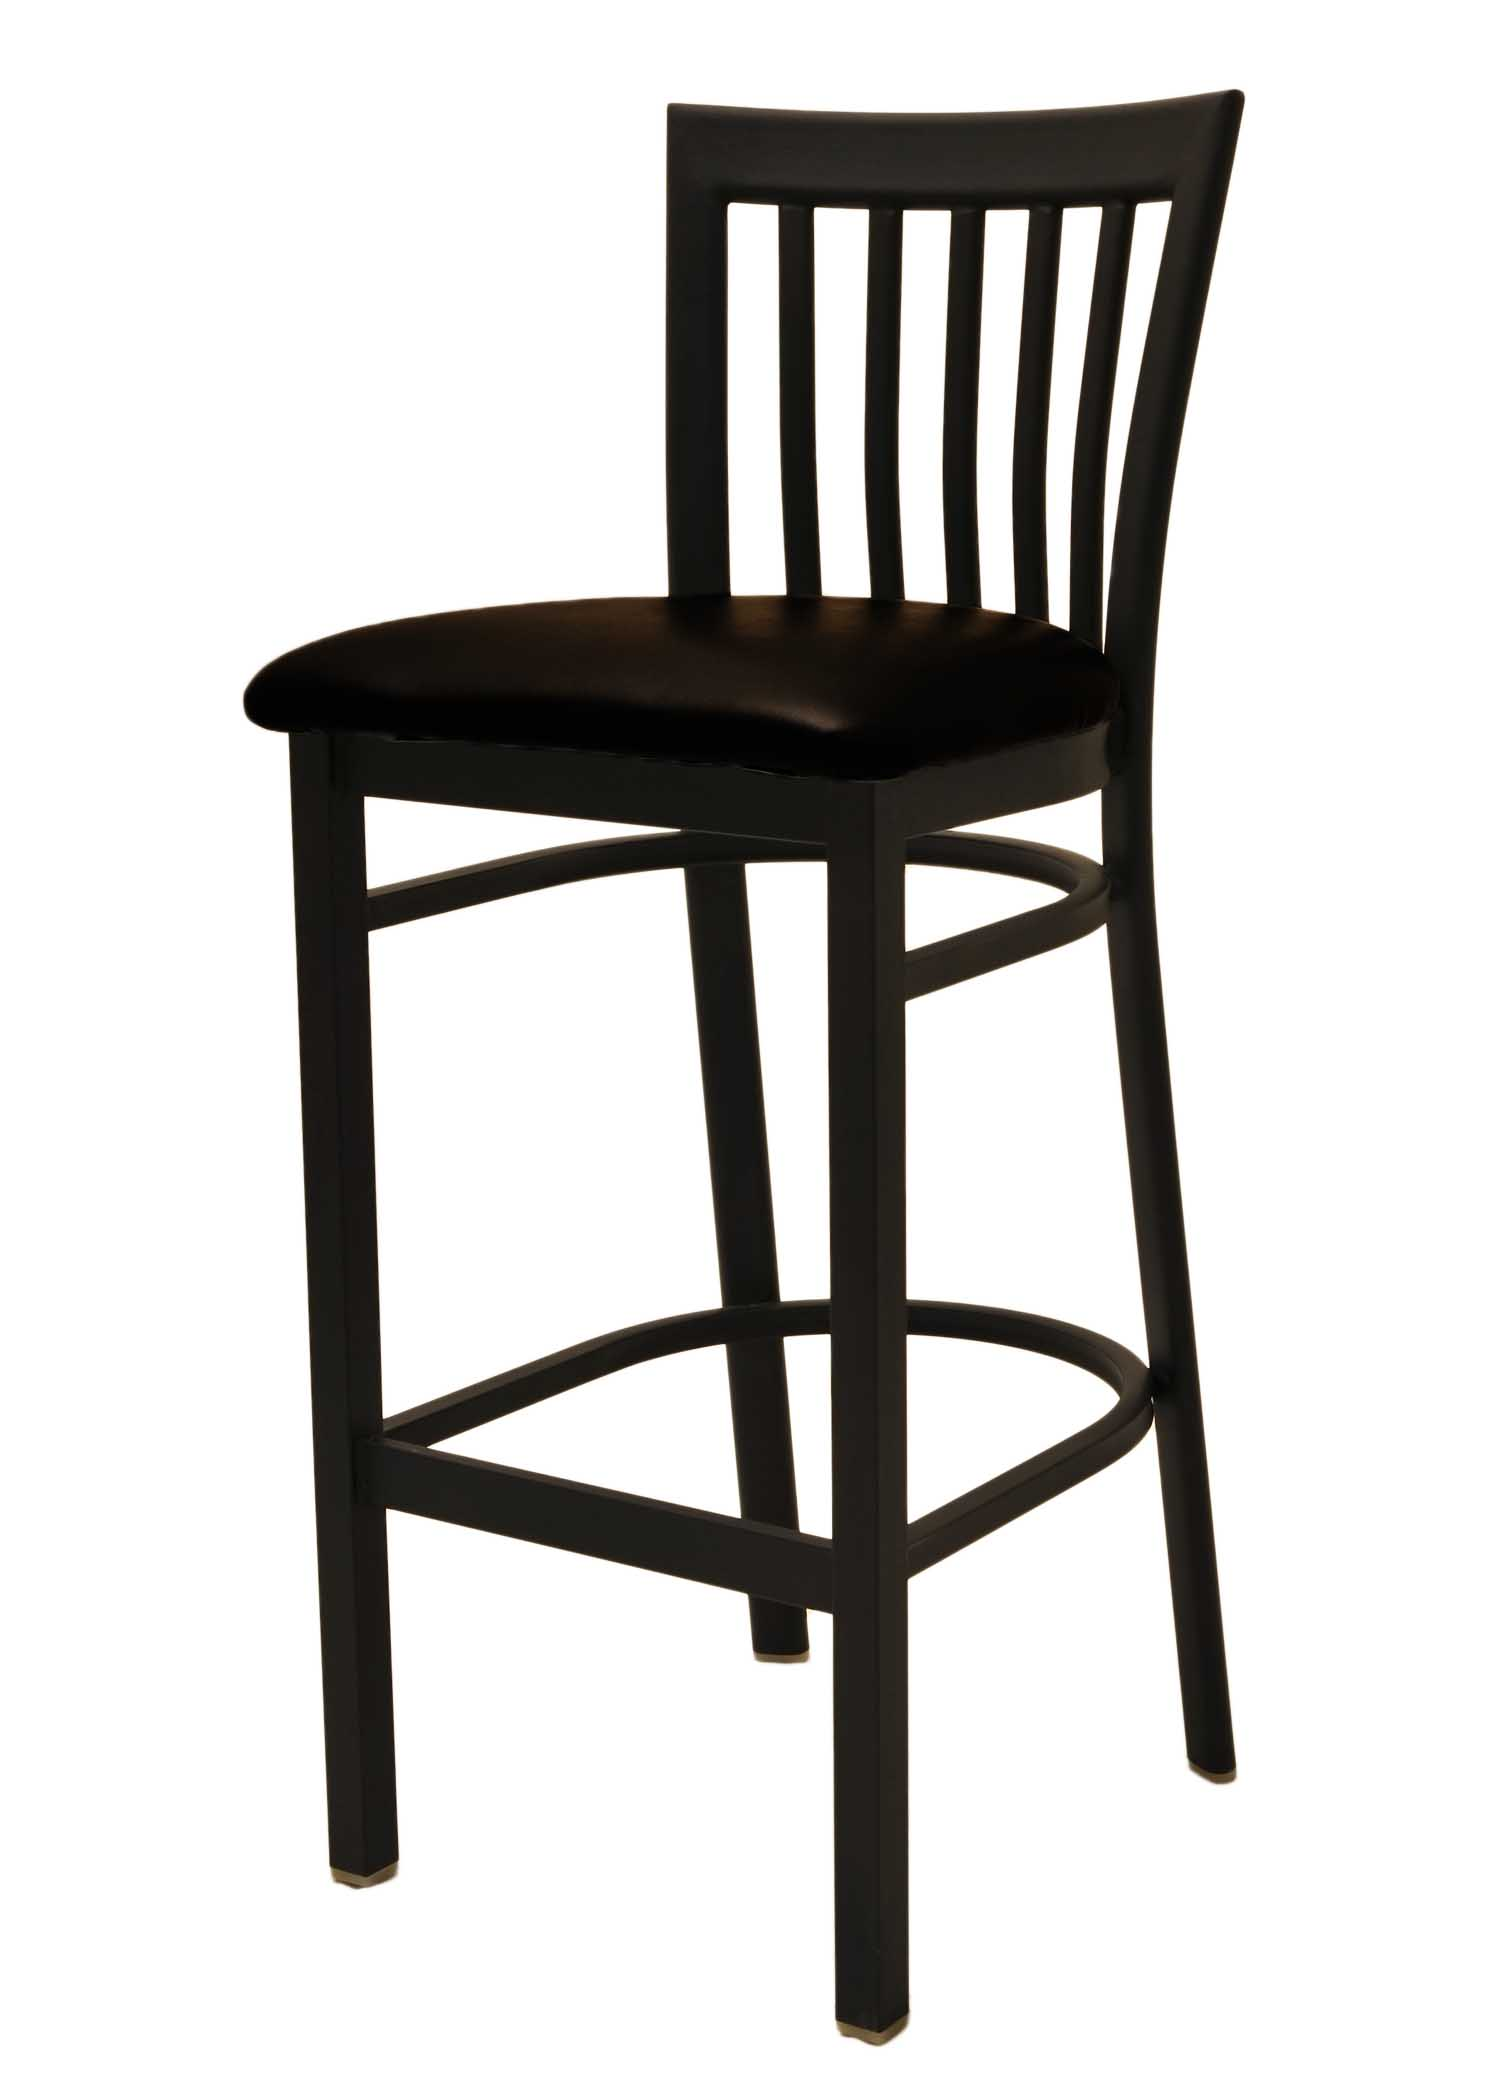 metal frame jailhouse back bar stool picture 1 - Metal Bar Stools With Backs